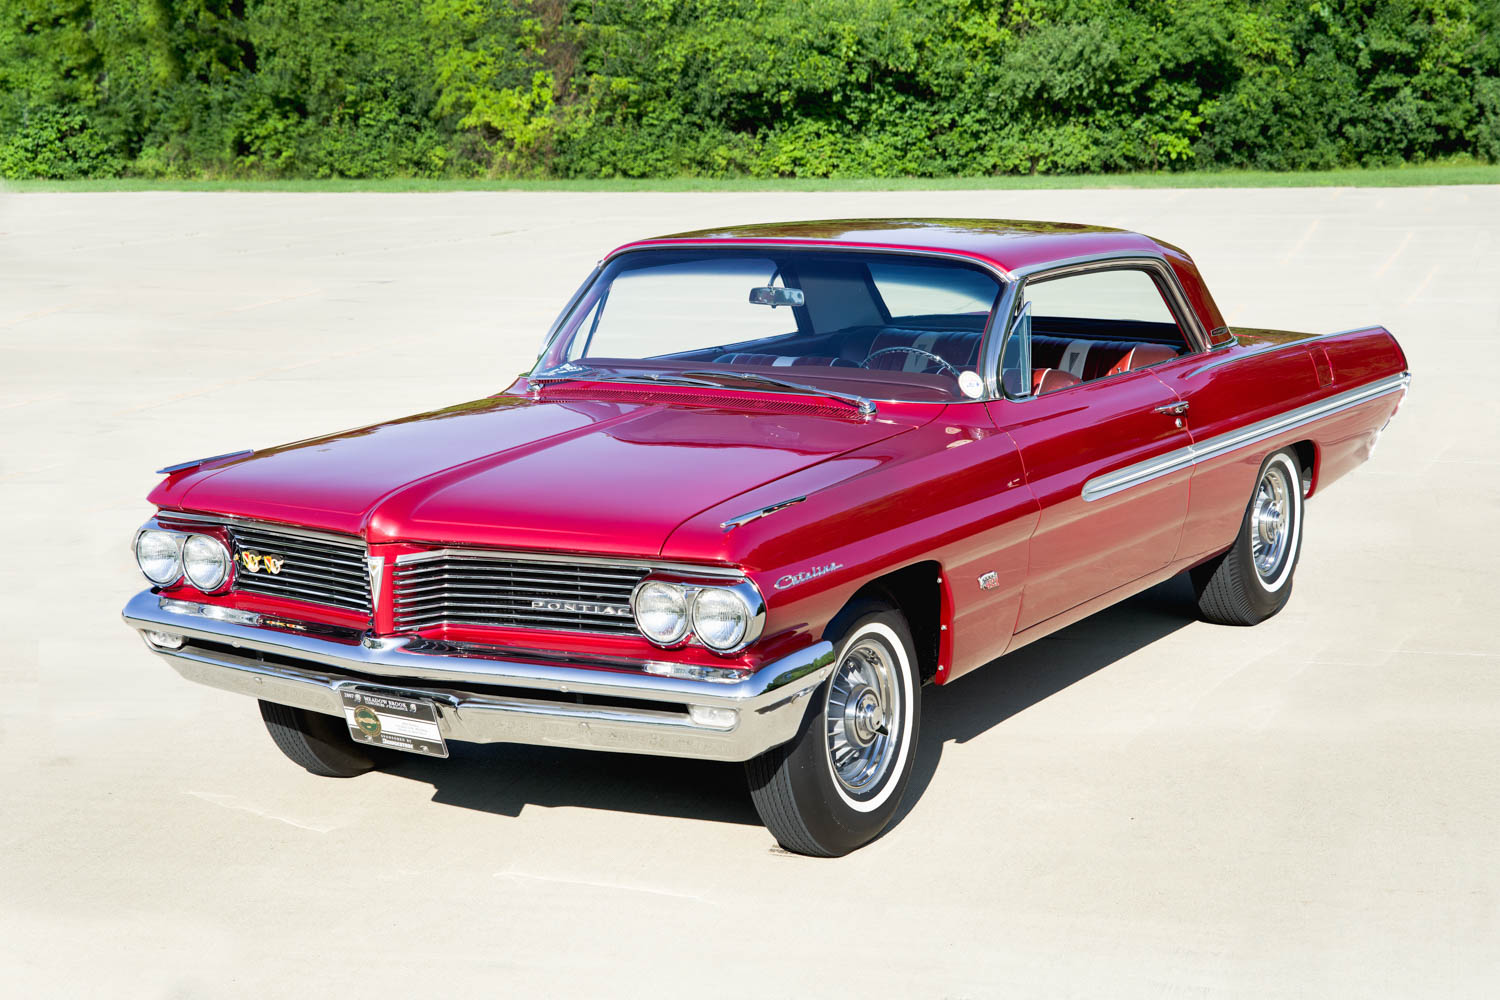 Fans of the full-size ponchos frequently point to the '62 Catalina as the best of the breed. By any measure, it's a beautiful automobile.